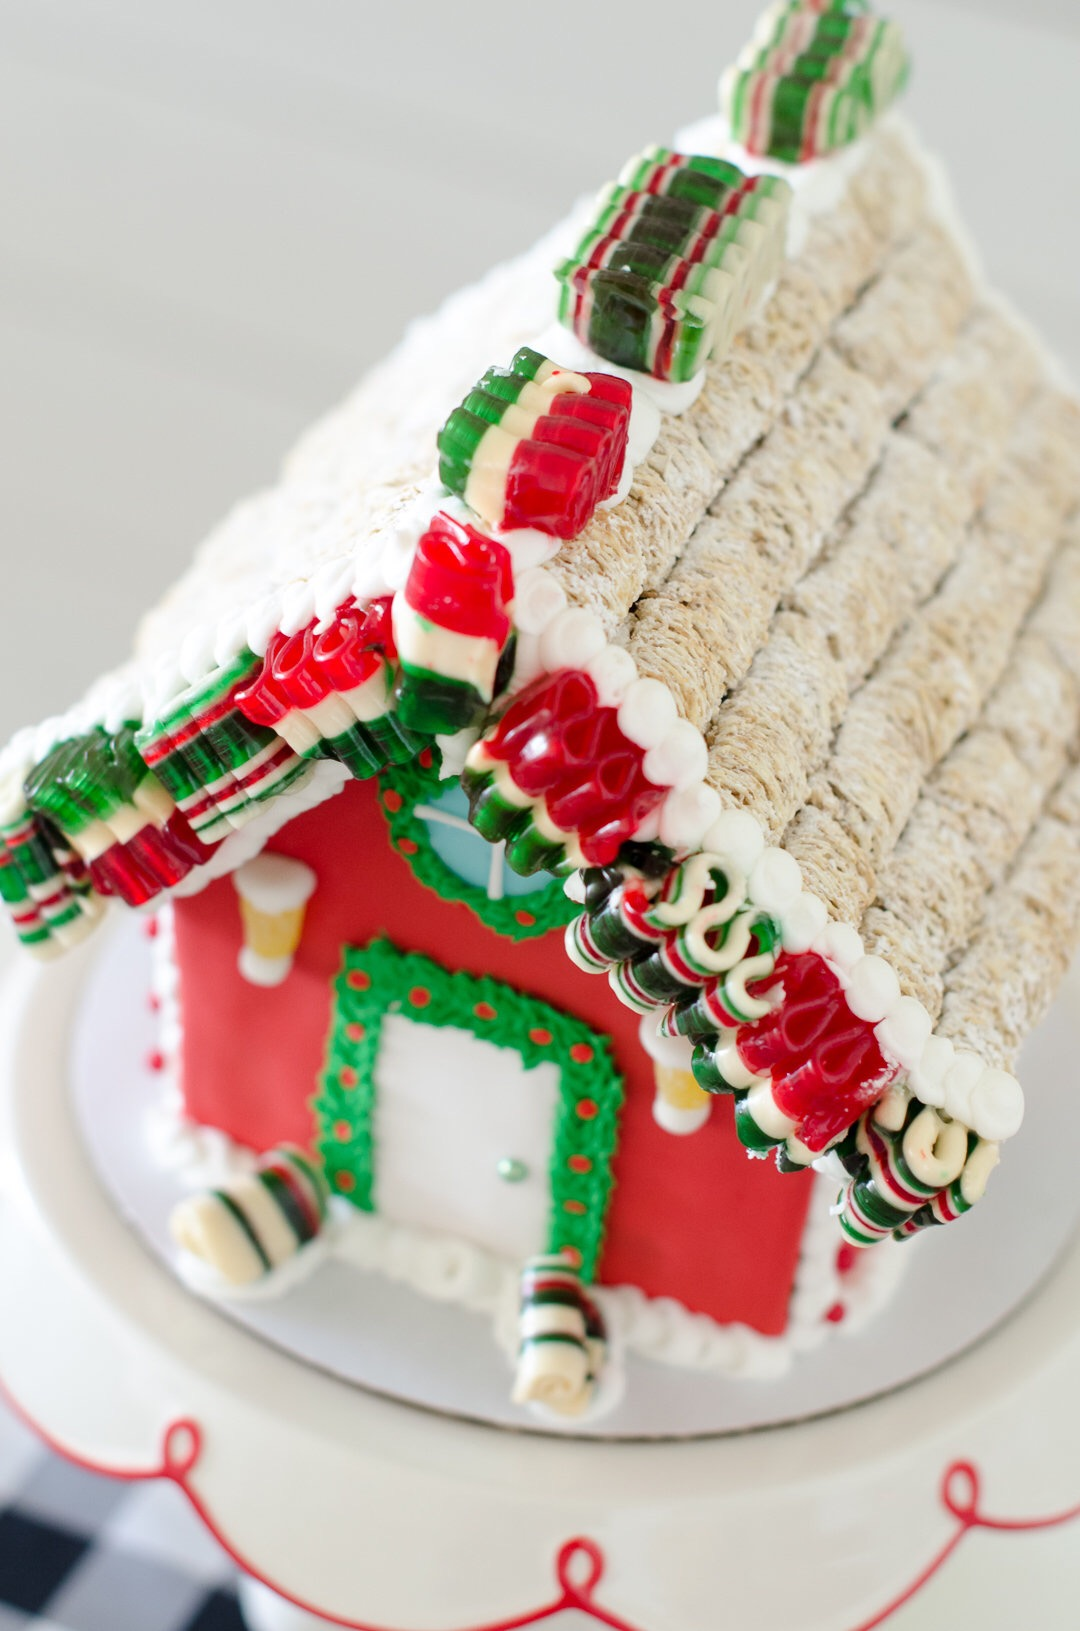 Beautifully decorated gingerbread house with ribbon candy. See more holiday party inspiration from Austin based party stylist Mint Event Design at www.minteventdesign.com #desserttable #christmasdesserts #holidayparty #holidays #partyideas #christmasparty #holidaypartyideas #gingerbreadhouses